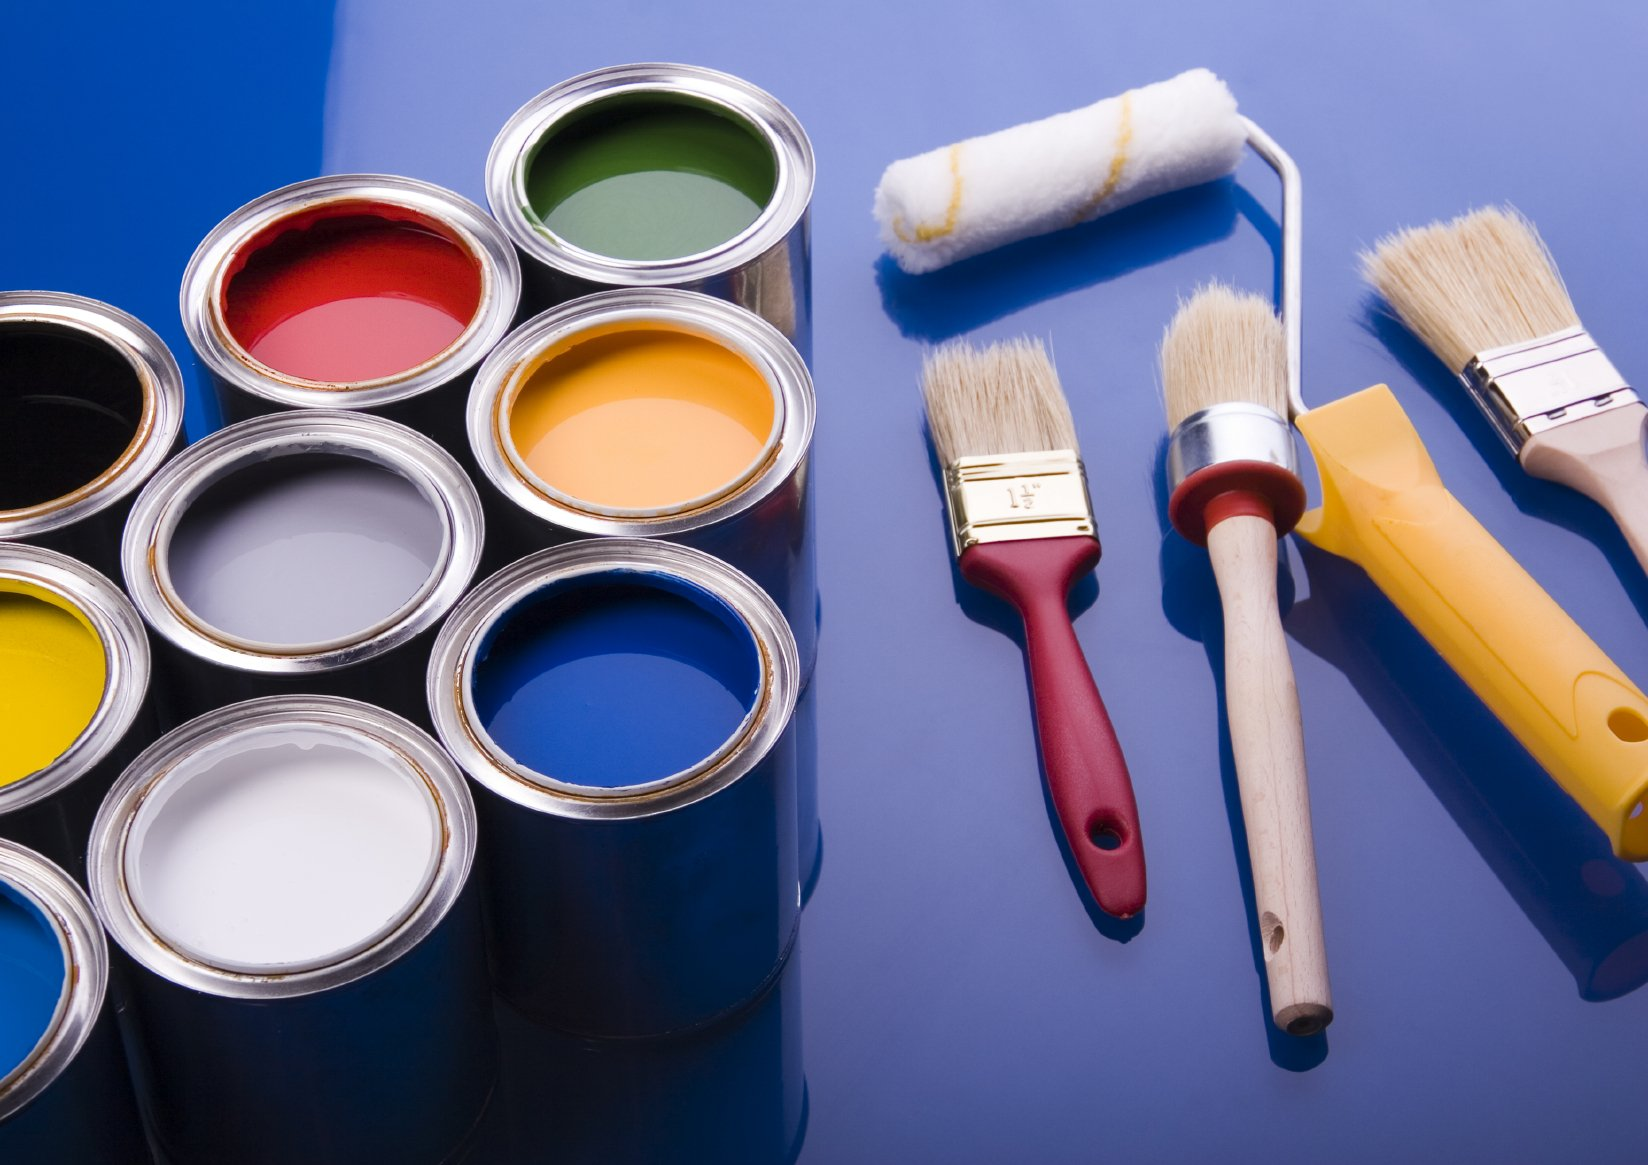 5 little known facts about house painting for homeowners